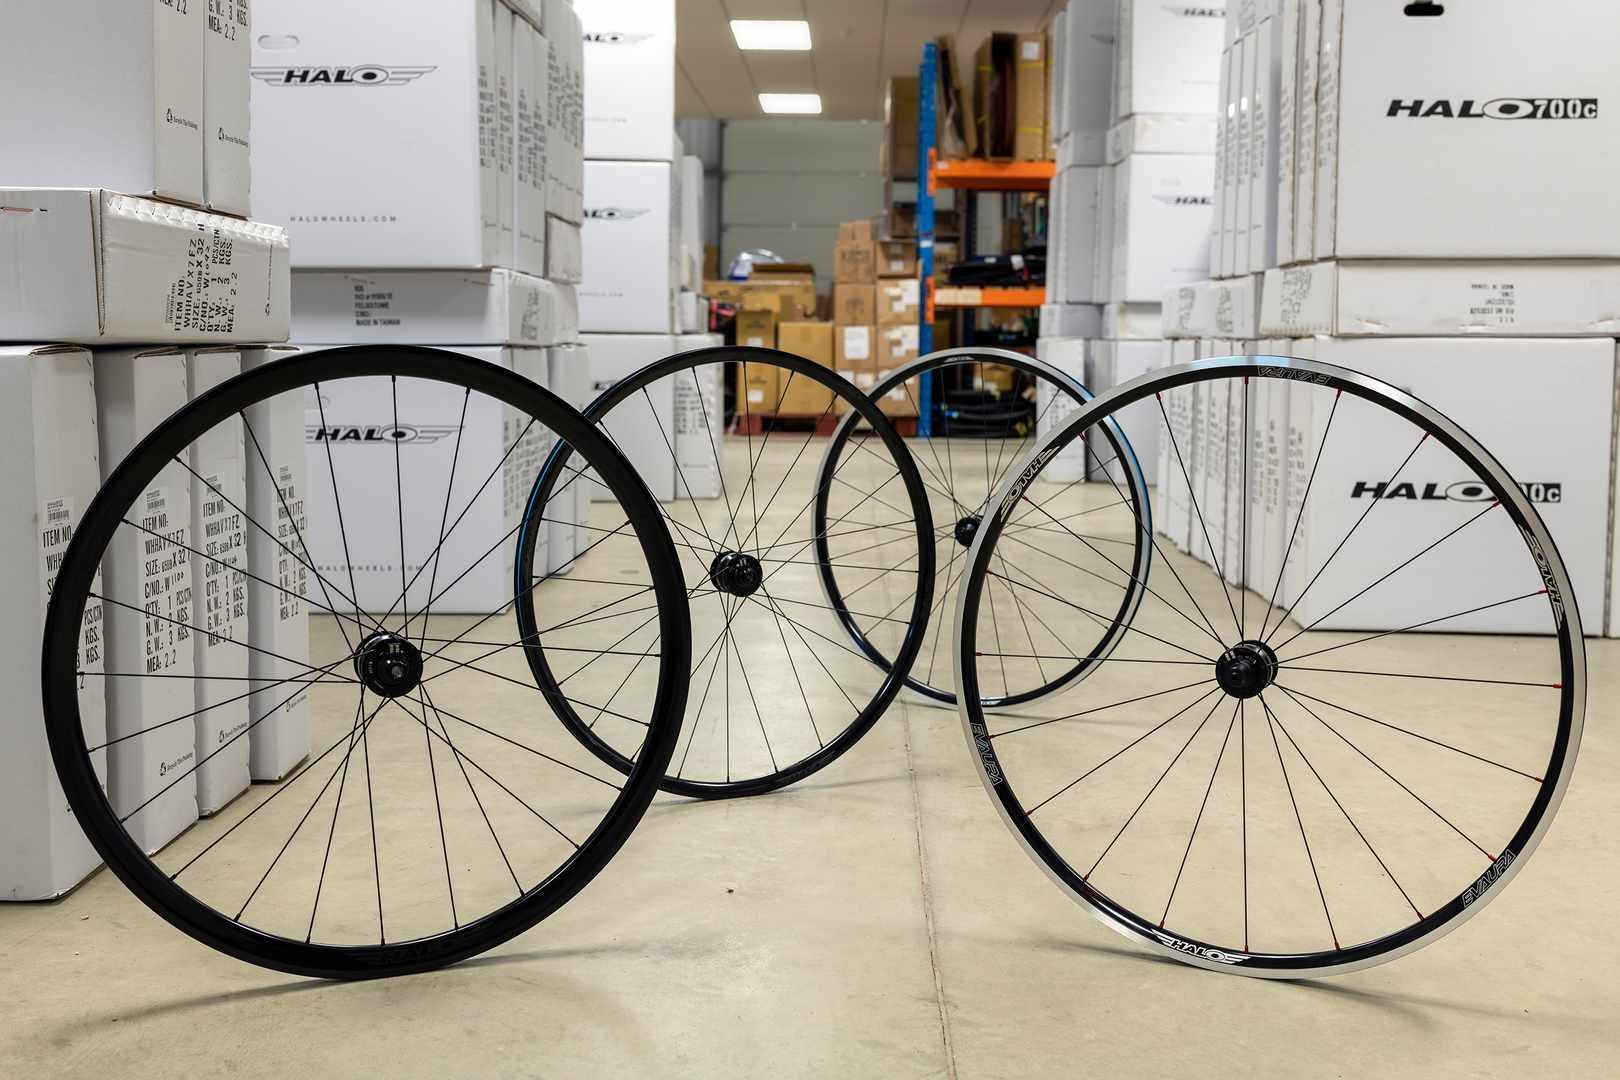 Dynamo hub for gravel bike